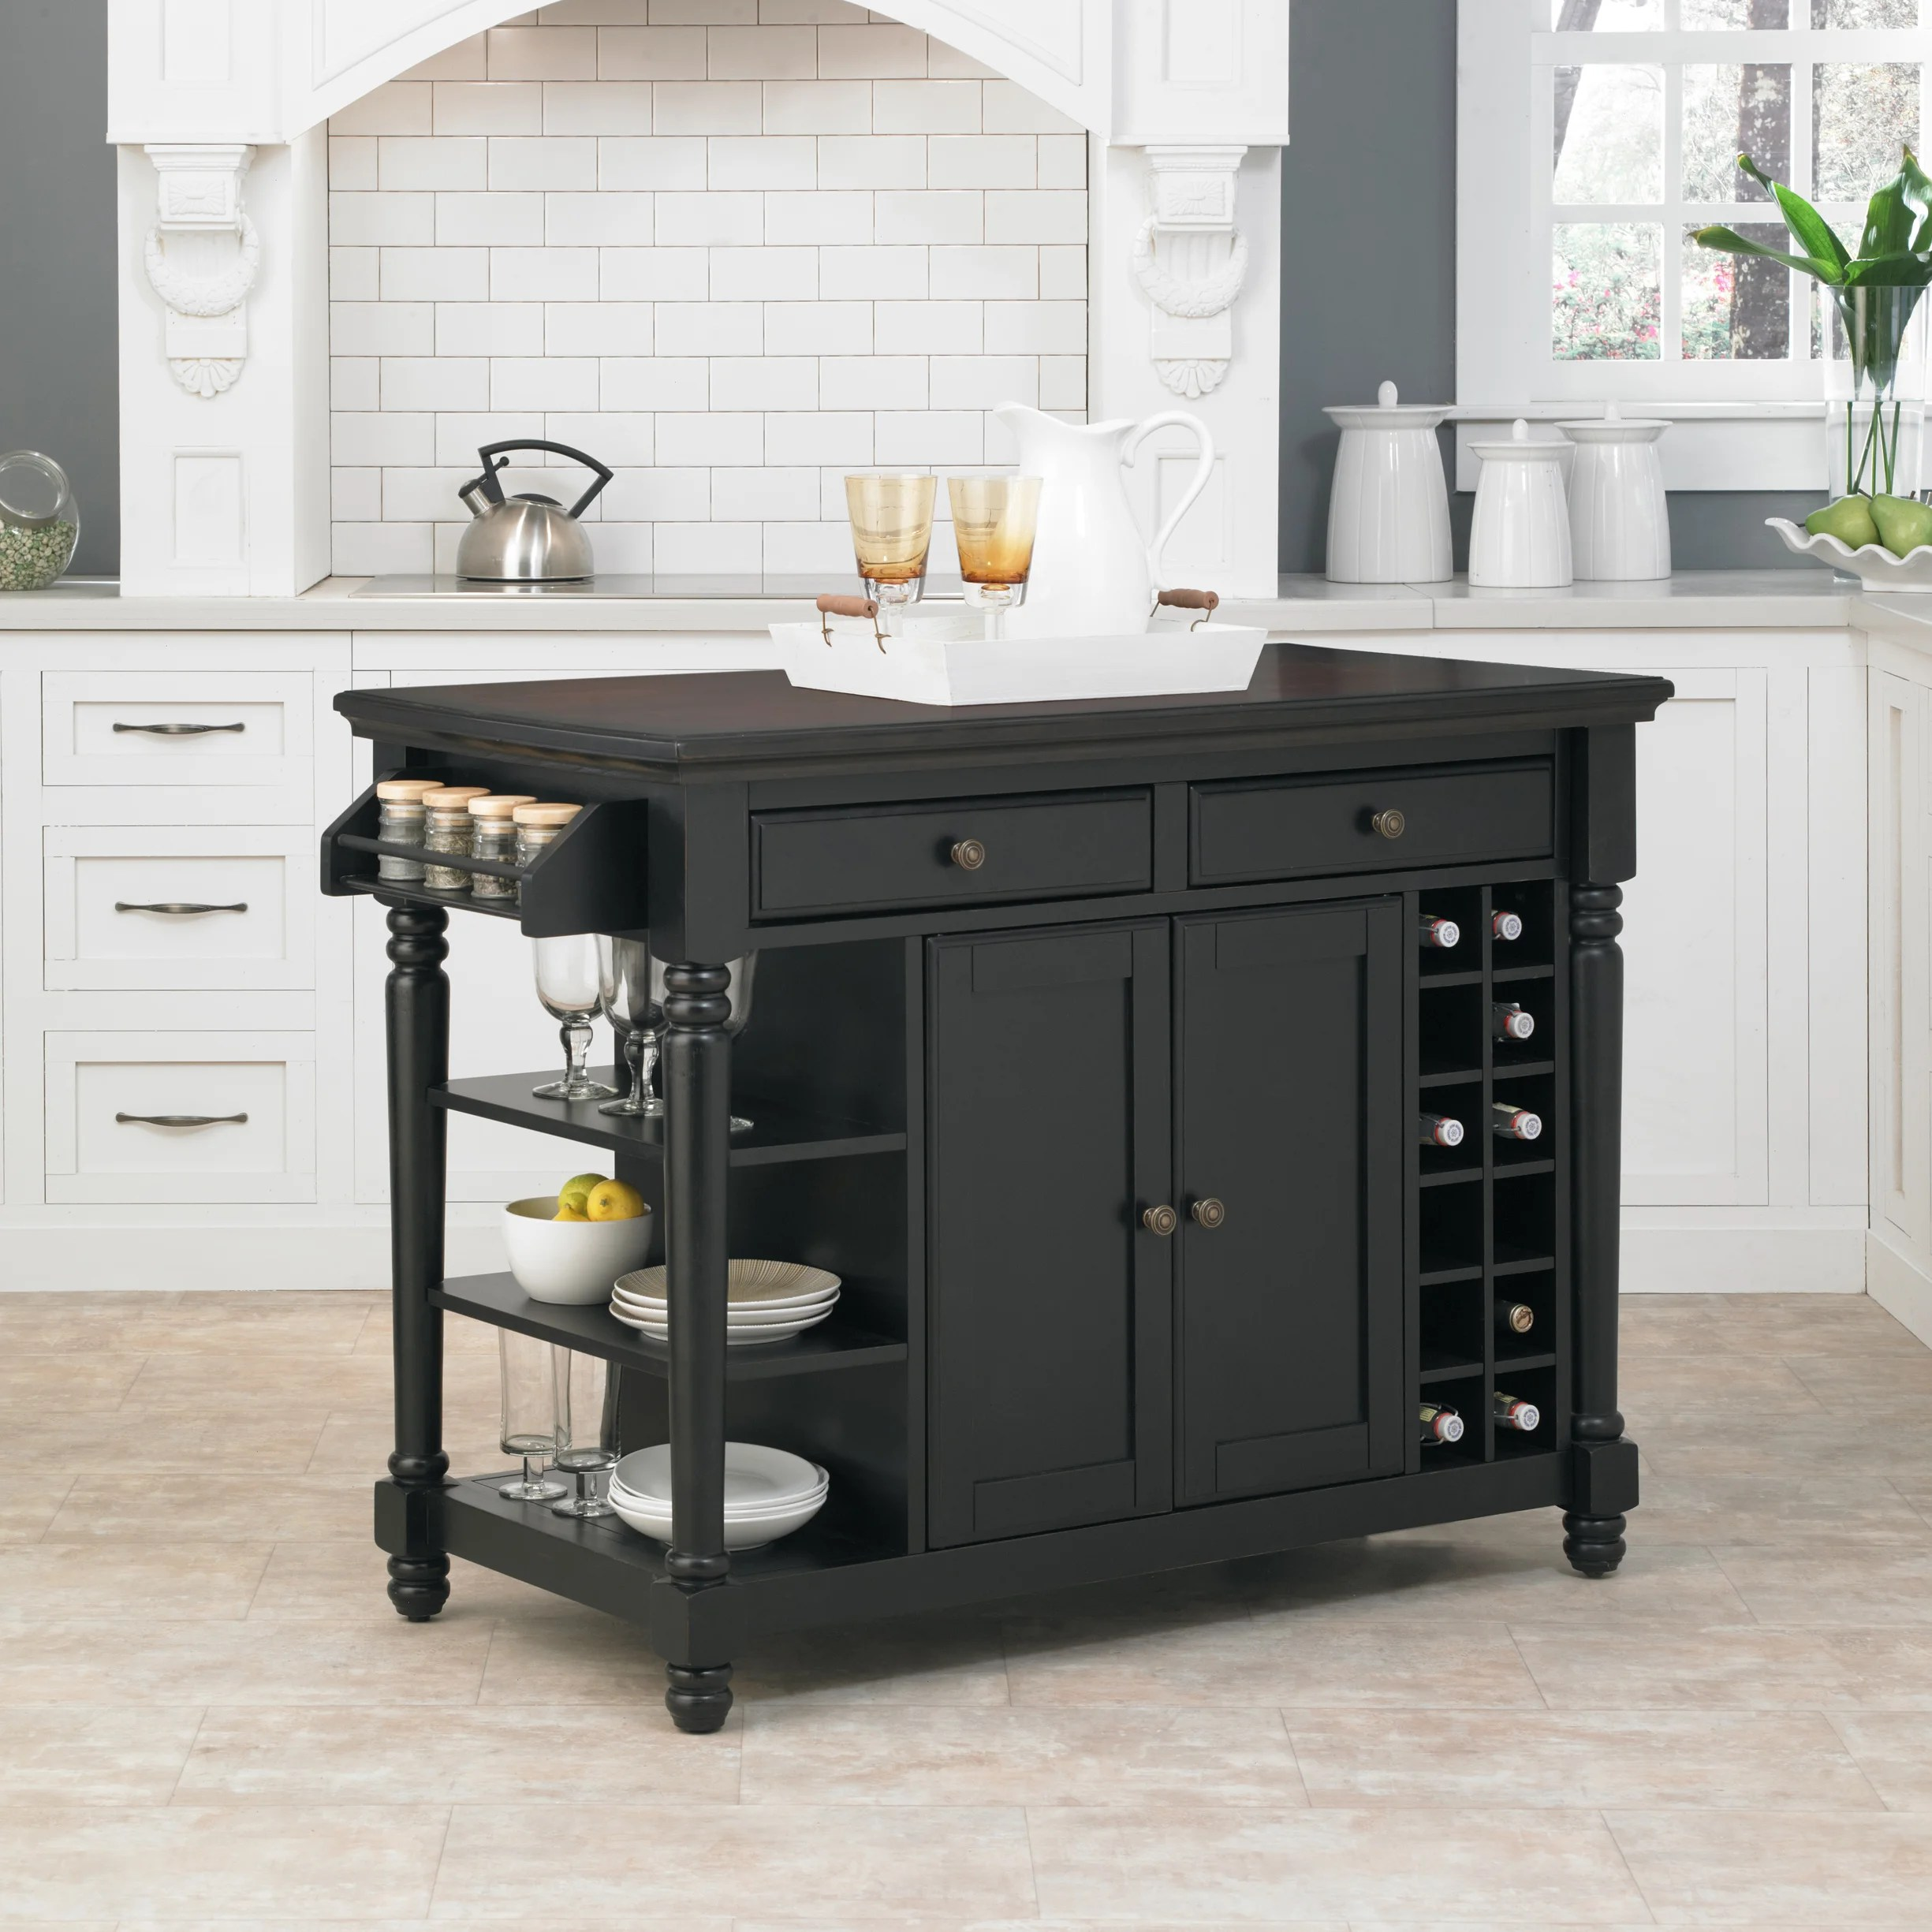 cherry kitchen island popular cabinets shop gracewood hollow remarqu black and rustic